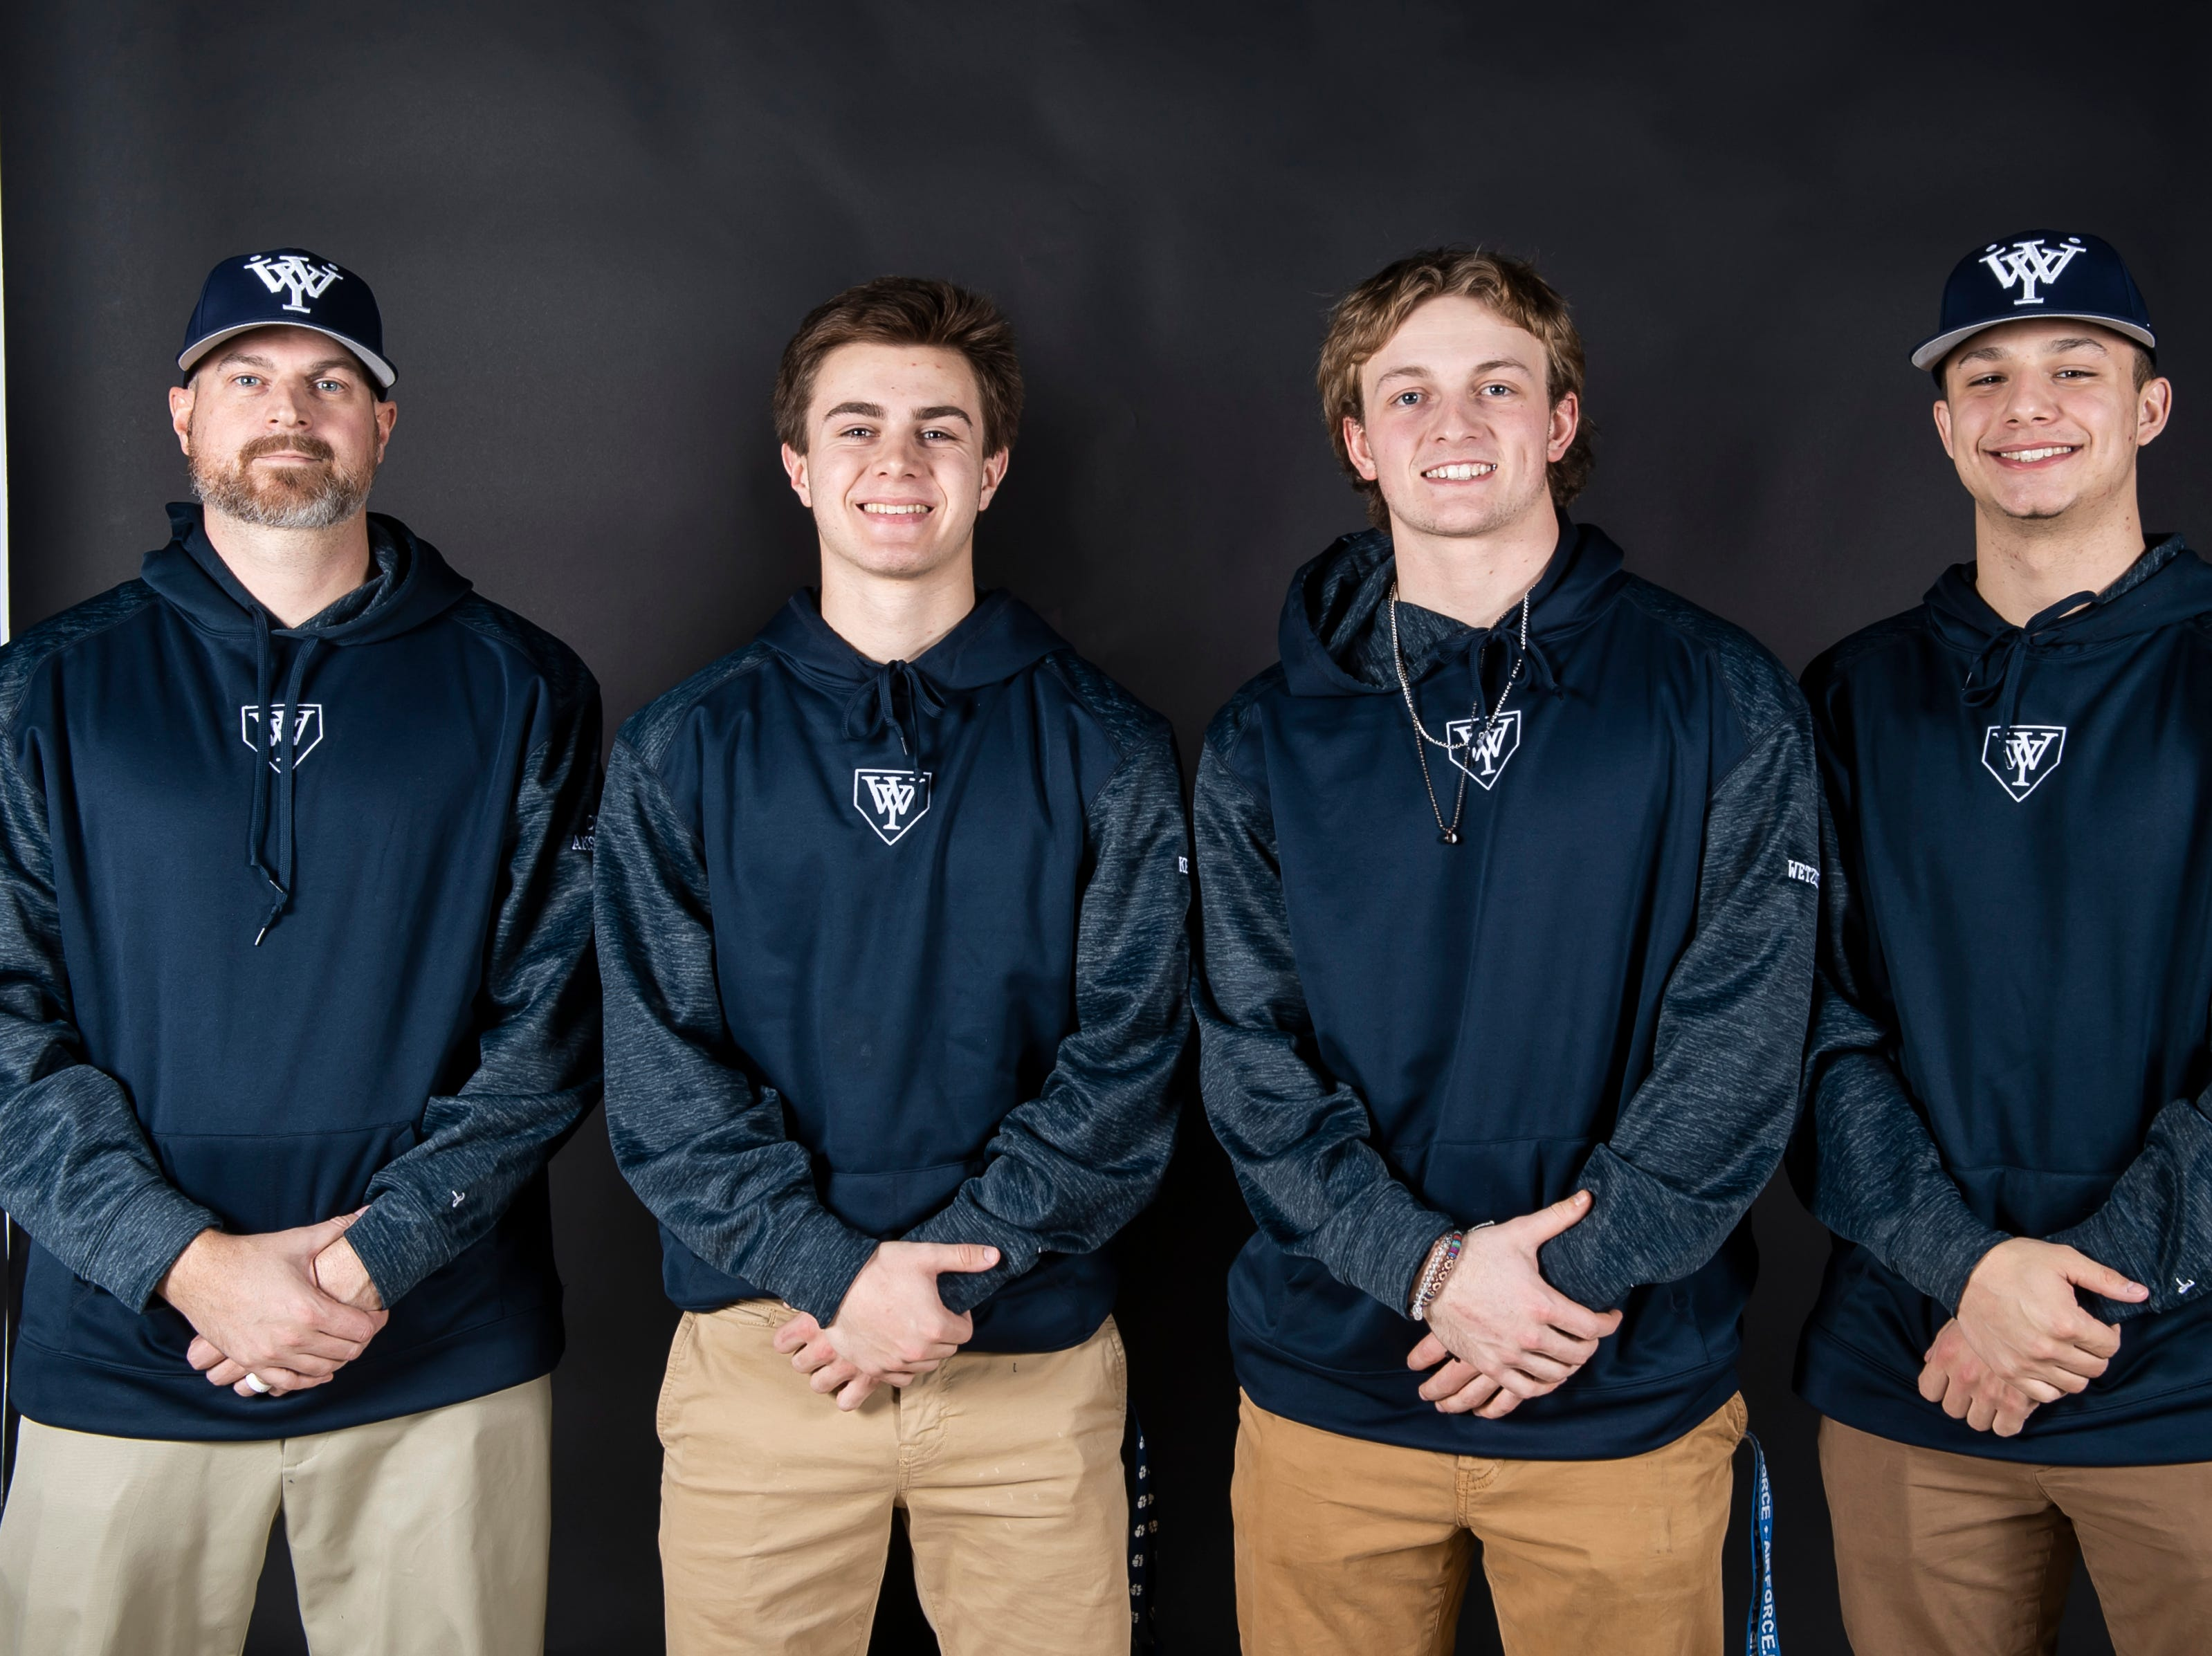 (From left) West York baseball coach Erik Amspacher and players players Trent Ketterman, Justin Wetzel and Elias Blue pose in the GameTimePA photo booth during spring sports media day in York Sunday, March 10, 2019.